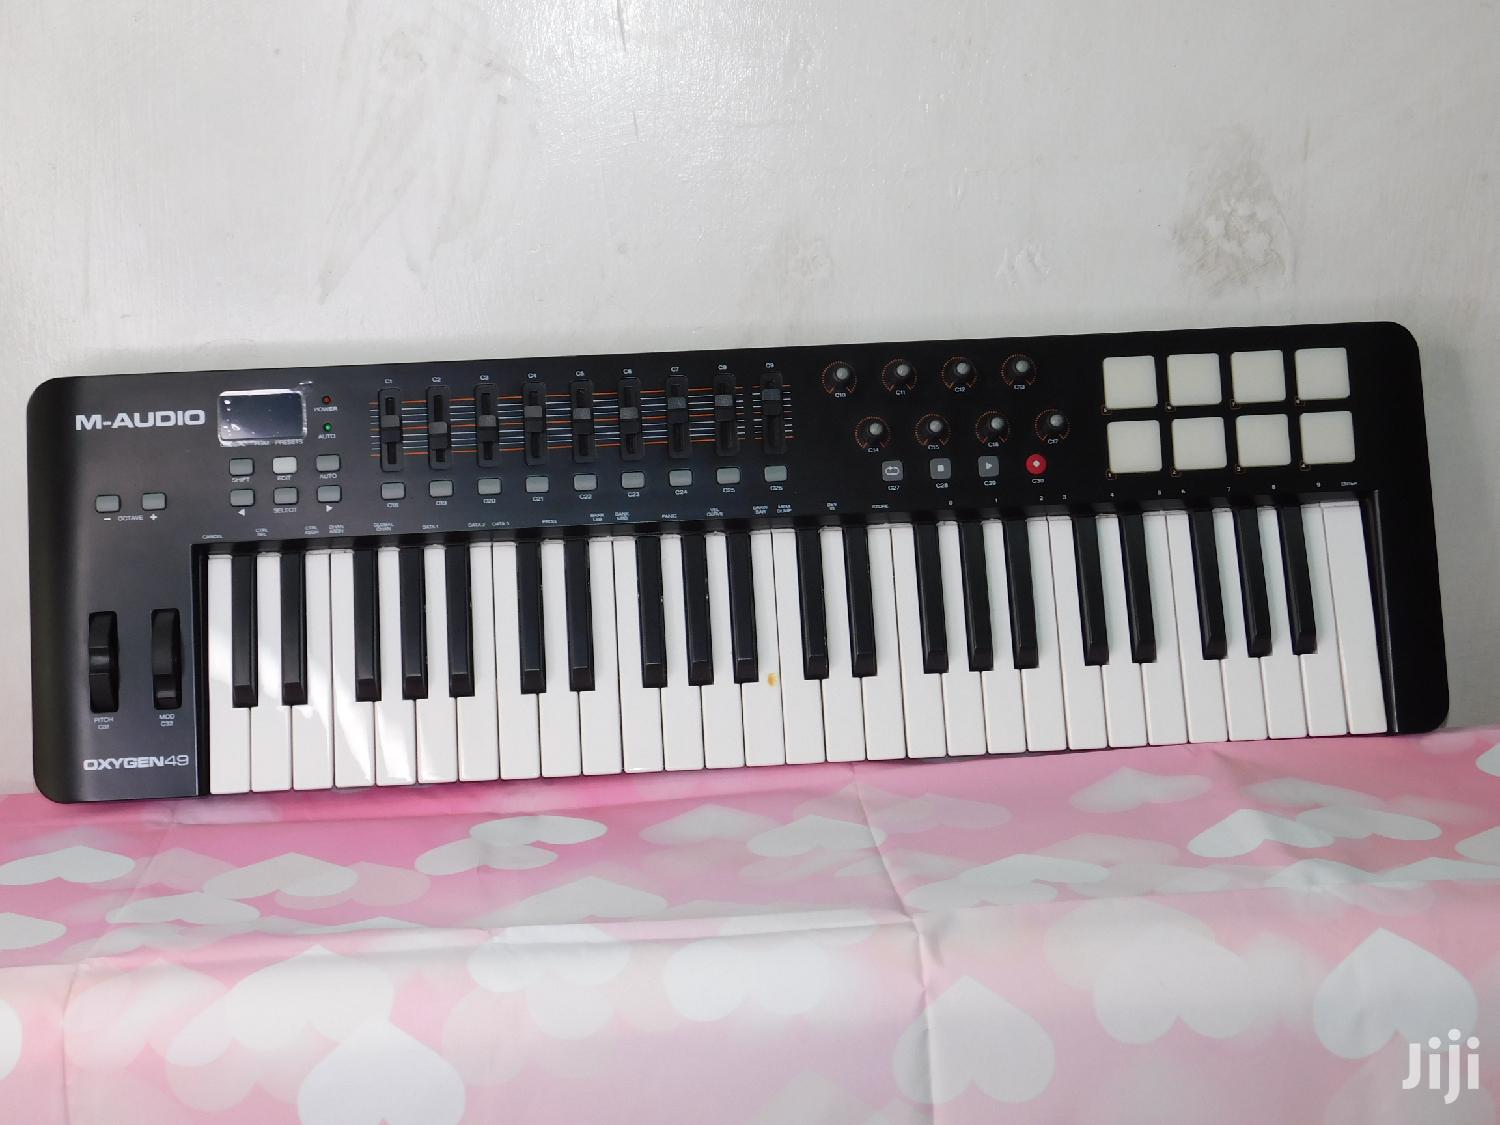 M-audio Midi Oxygen 49 Keyboard Drum Pad Etc Mido Keyboard